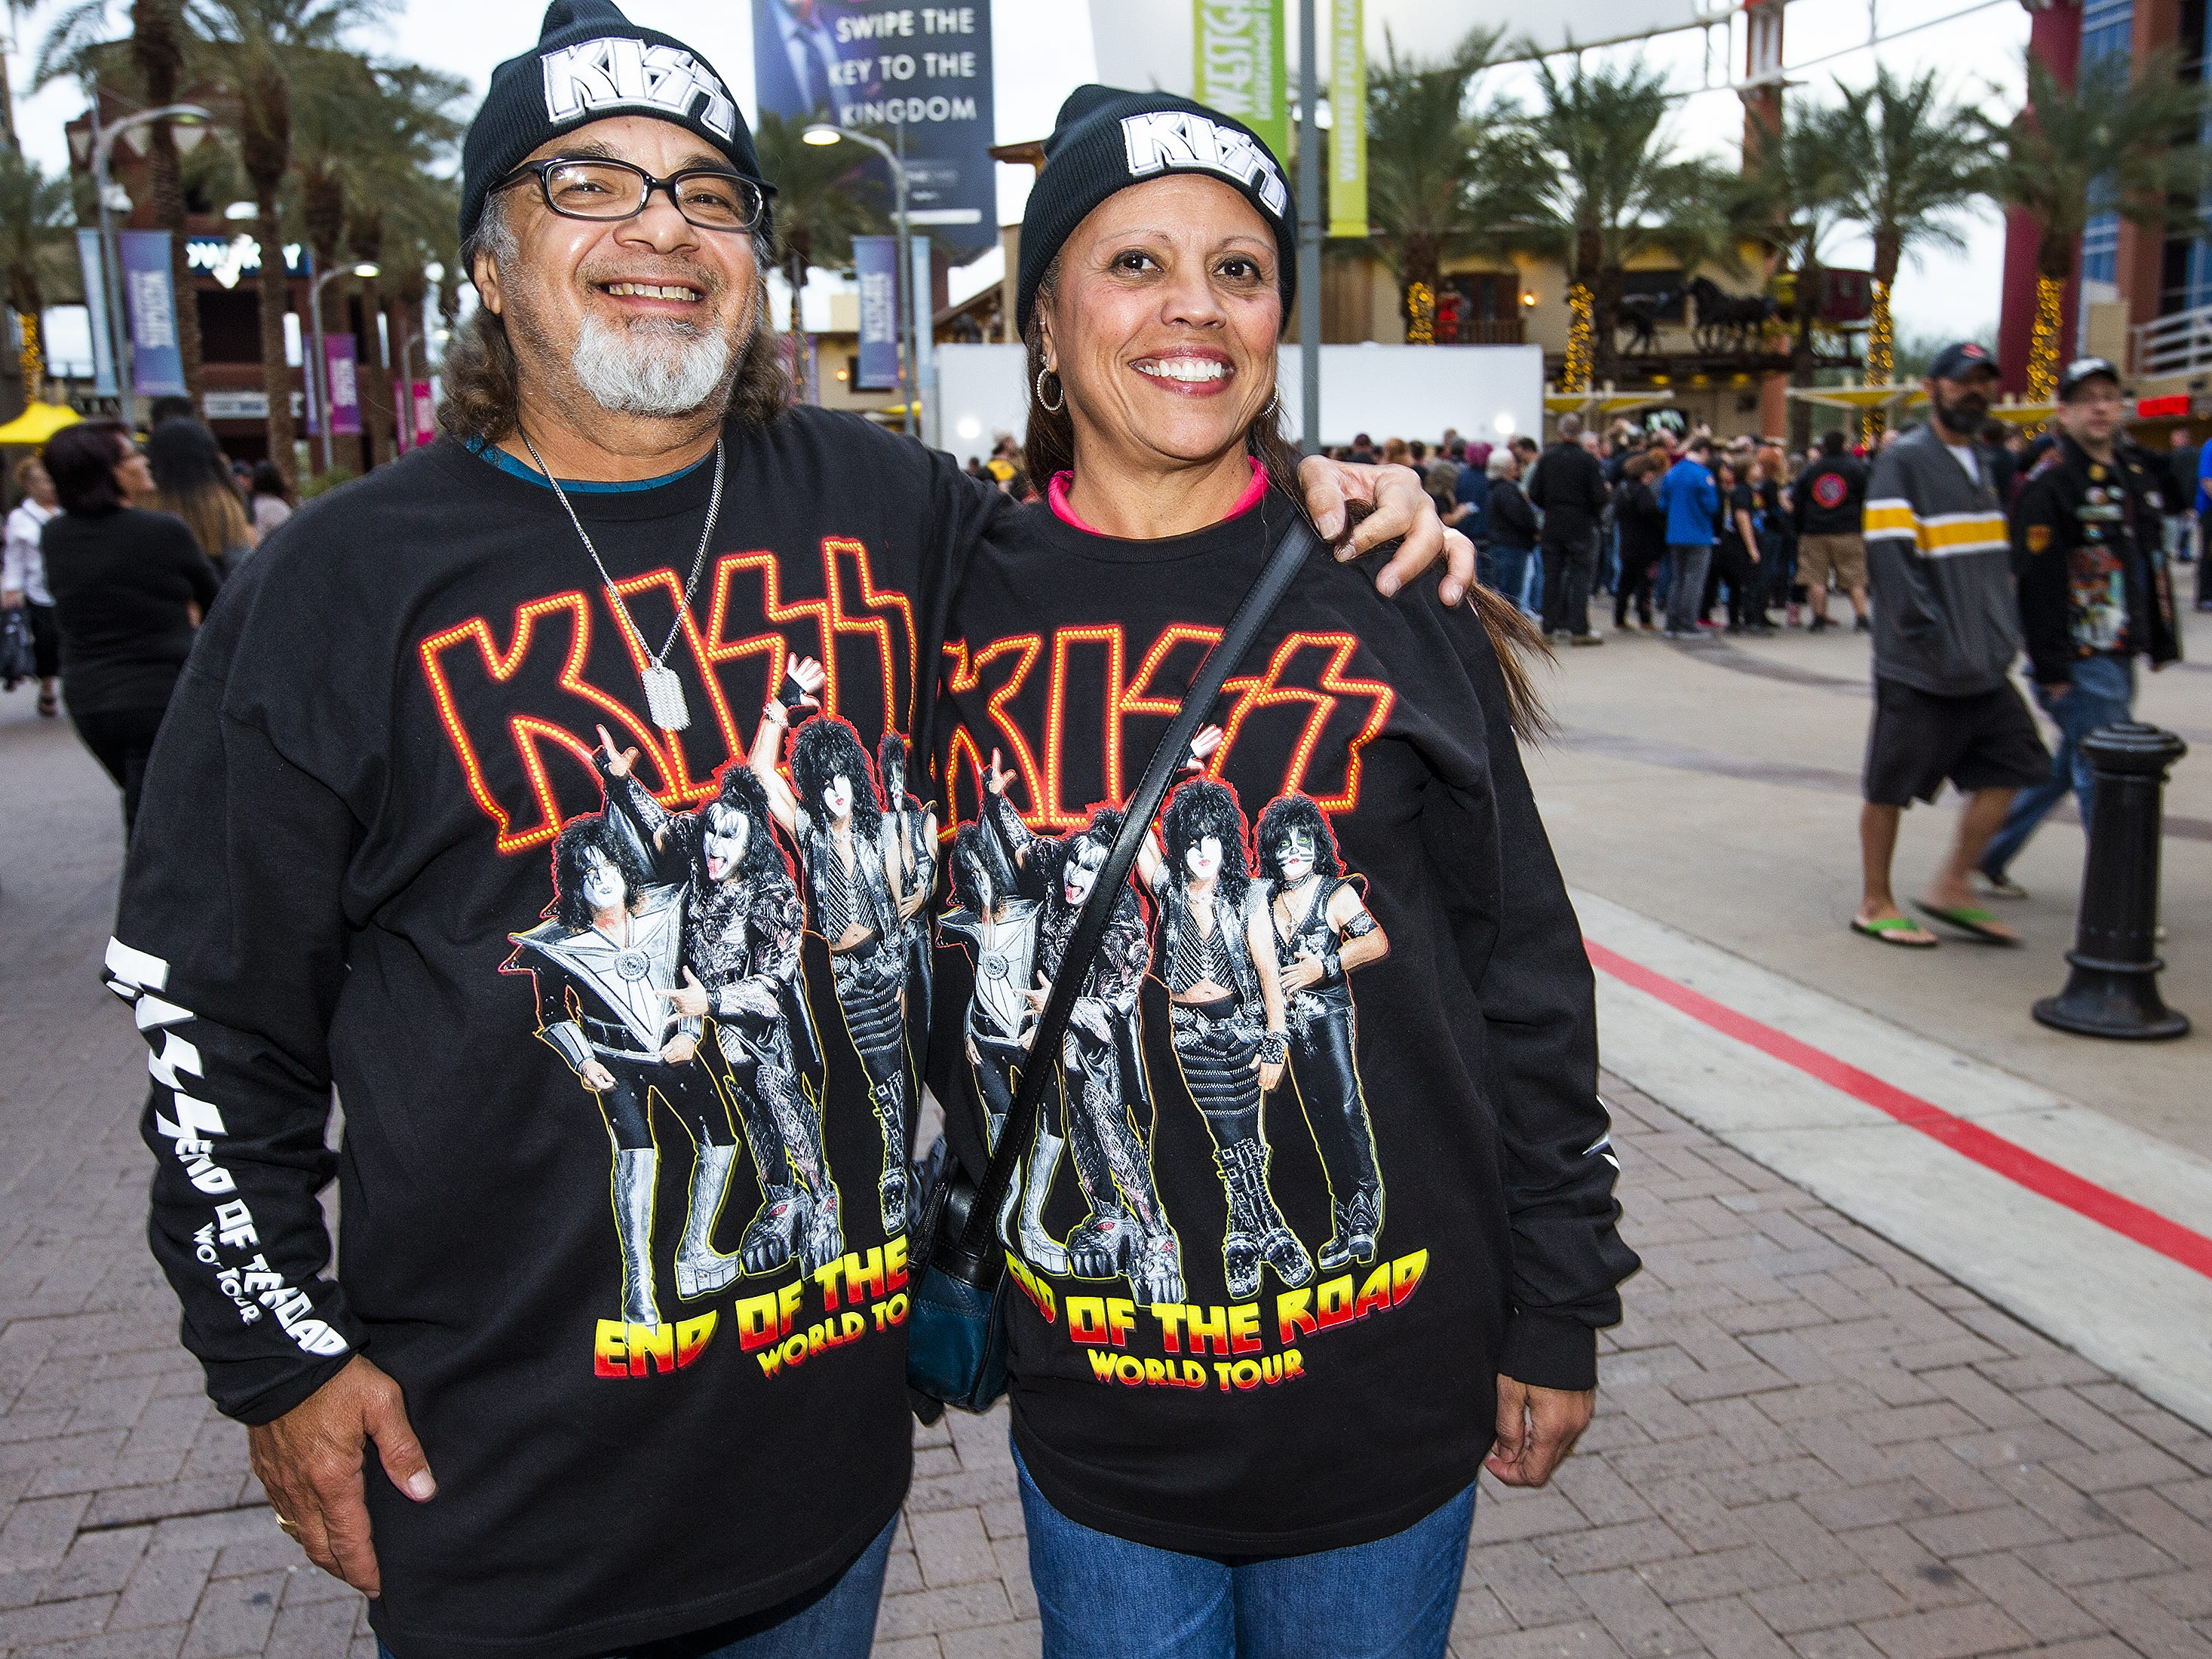 Antonio Castro and his wife, Louise, 60, drove all the way from El Paso, Texas, to show off their best Kiss makeup prior to the concert by the famed group at Gila River Arena in Glendale, Wednesday, Feb. 13, 2019. The concert was part of the End of the Road World Tour, the band's farewell to the fans.